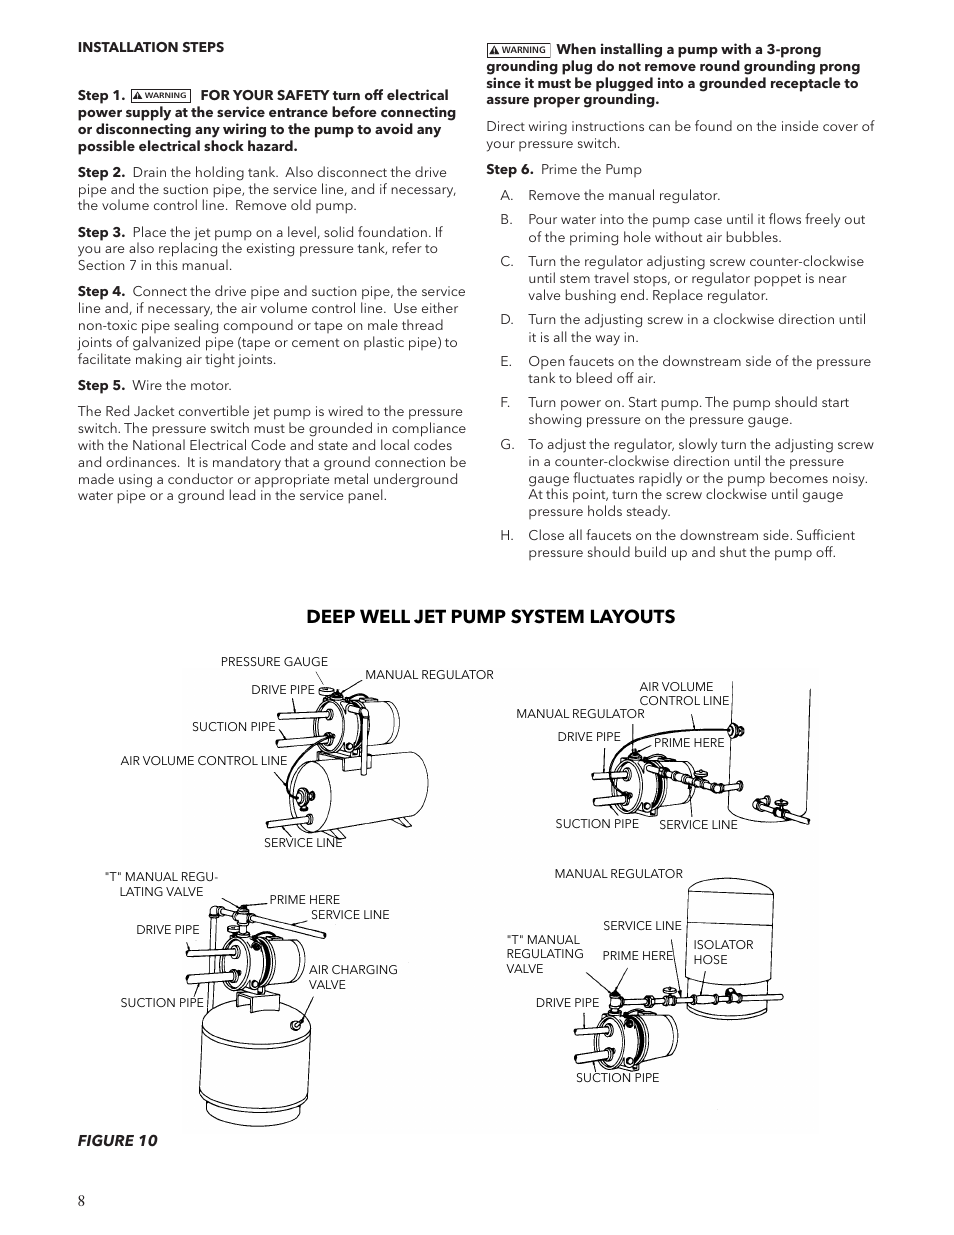 Deep Well Jet Pump System Layouts